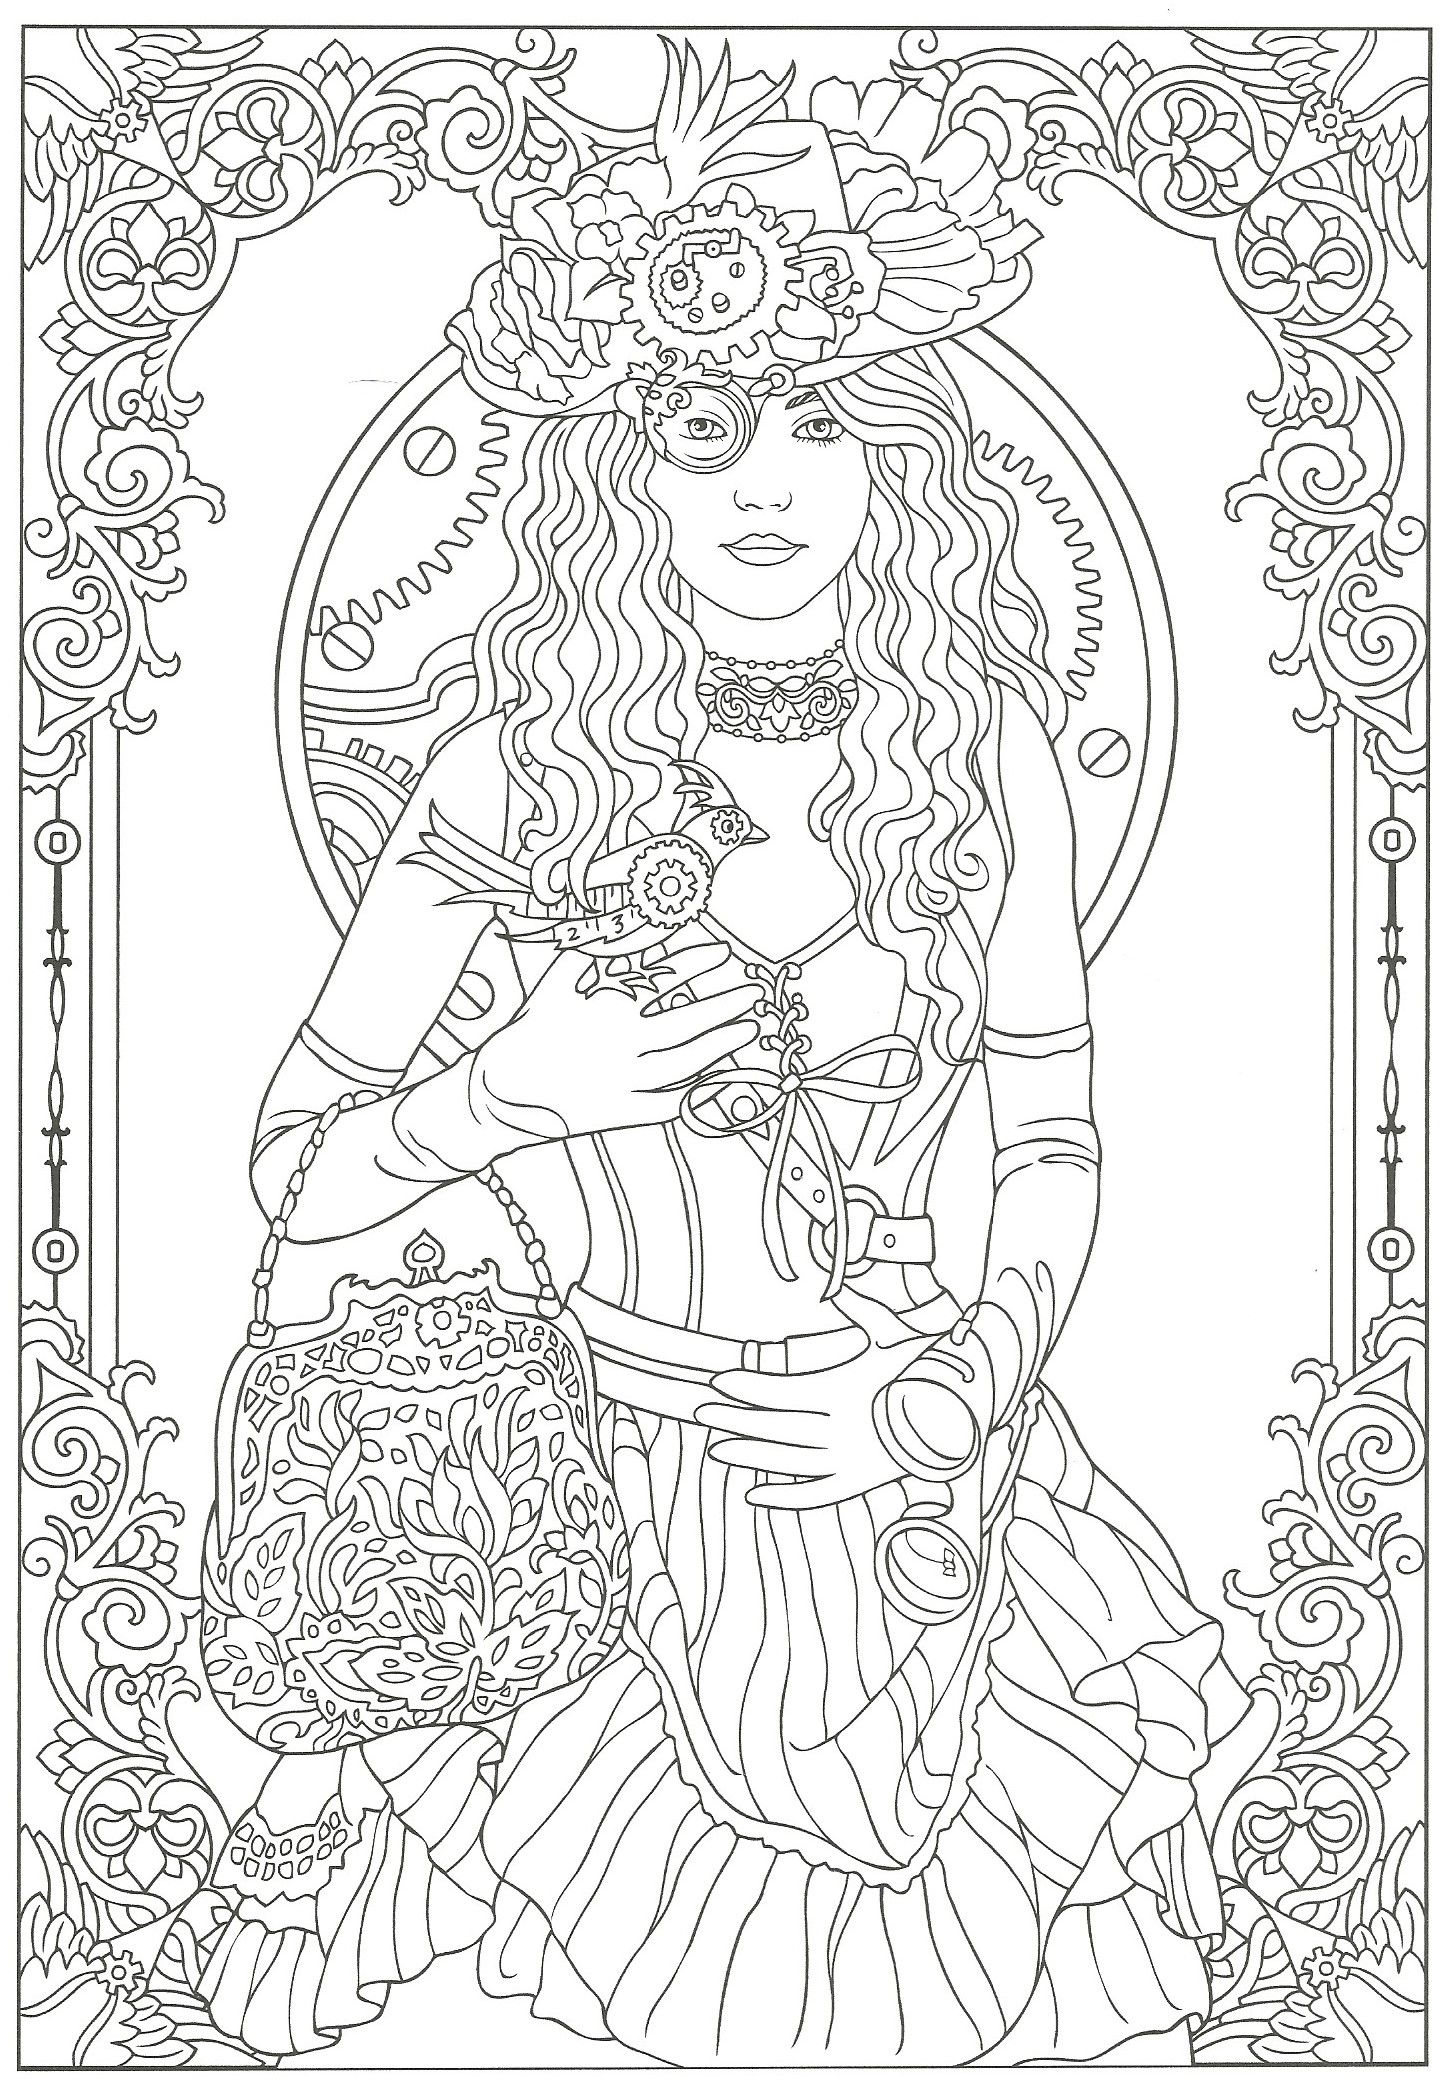 Steampunk Adult Coloring. Artwork by Marty Noble. Creative Haven ...